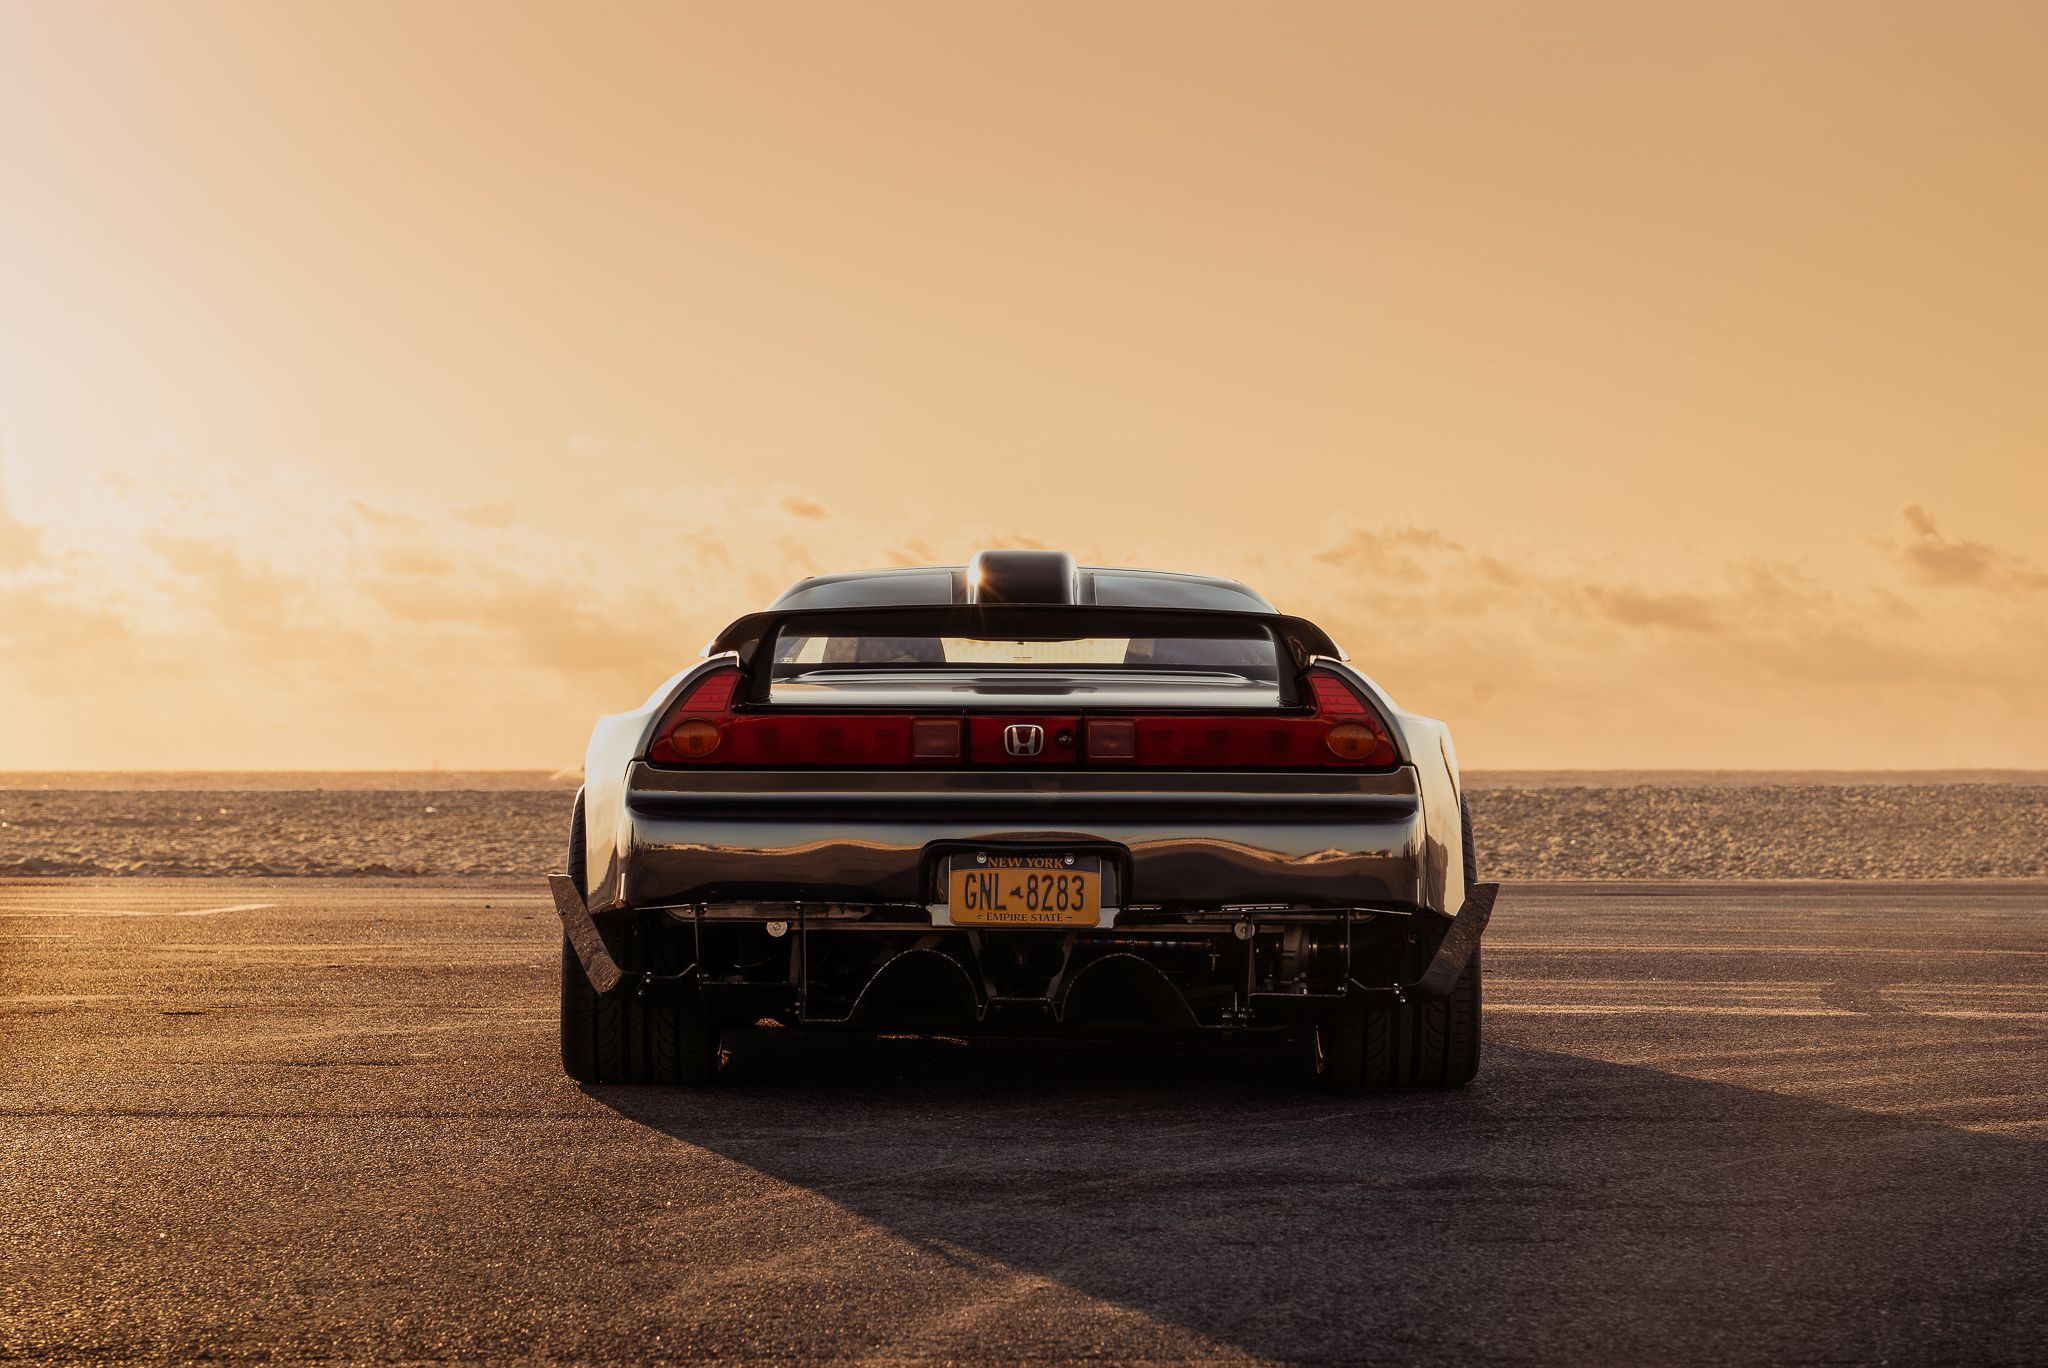 NSX - rear view & taillights